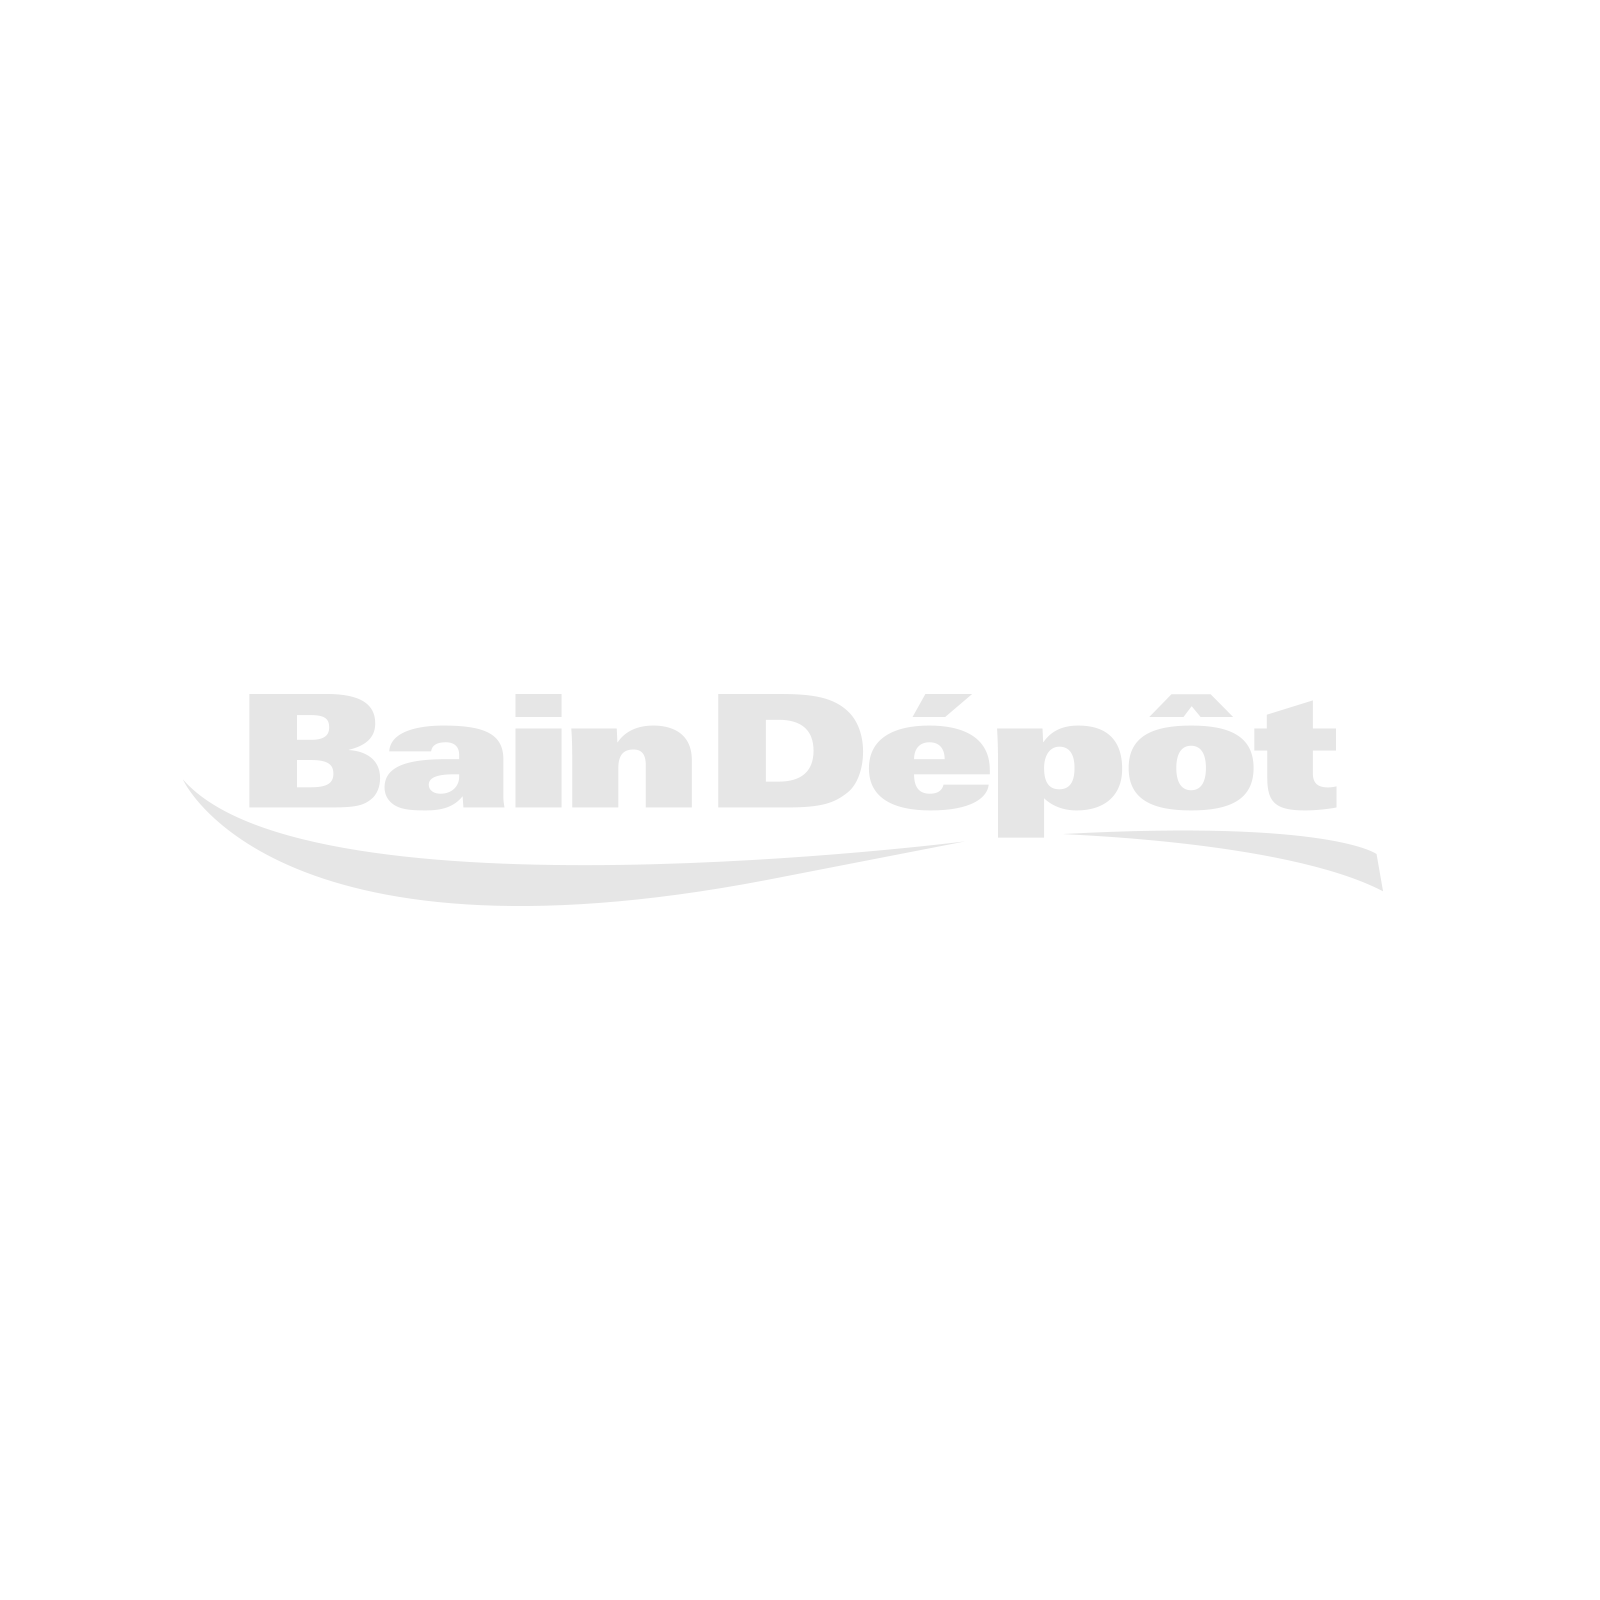 "42"" x 34"" rectangular shower base for left corner installation"